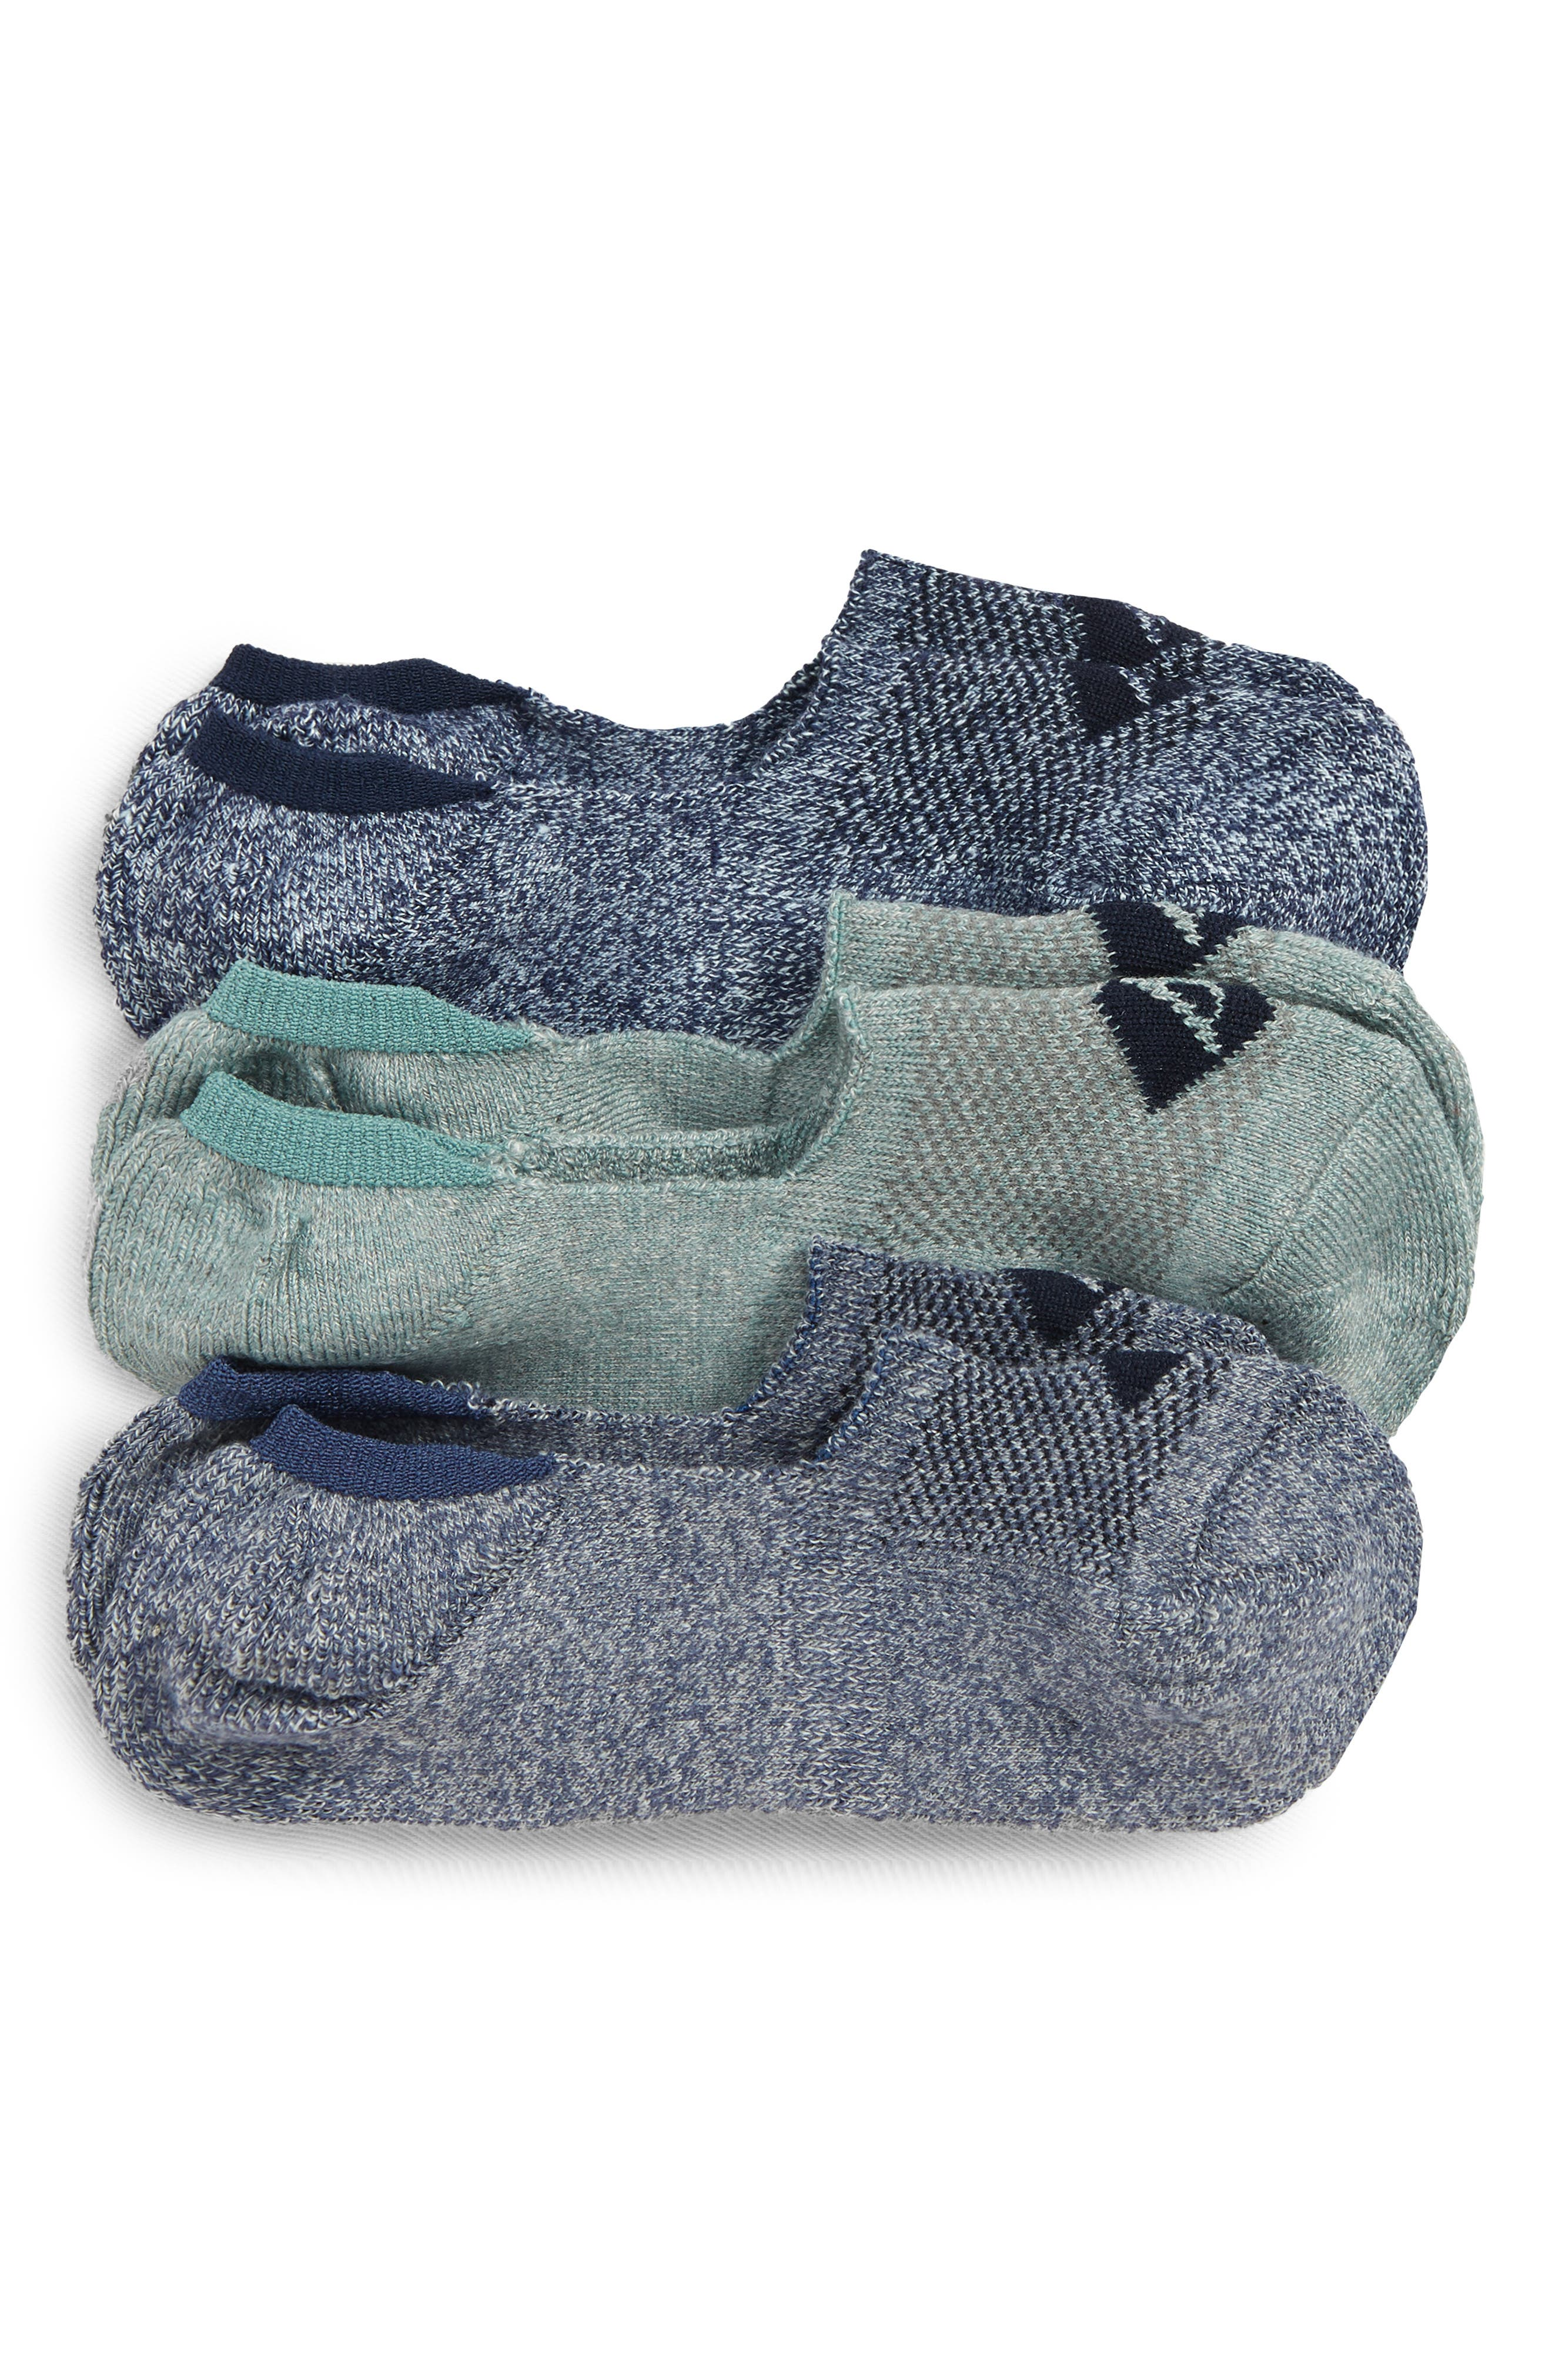 ,                             Top-Sider<sup>®</sup> Repreve Assorted 3-Pack Liner Socks,                             Main thumbnail 1, color,                             NAVY MARL ASST